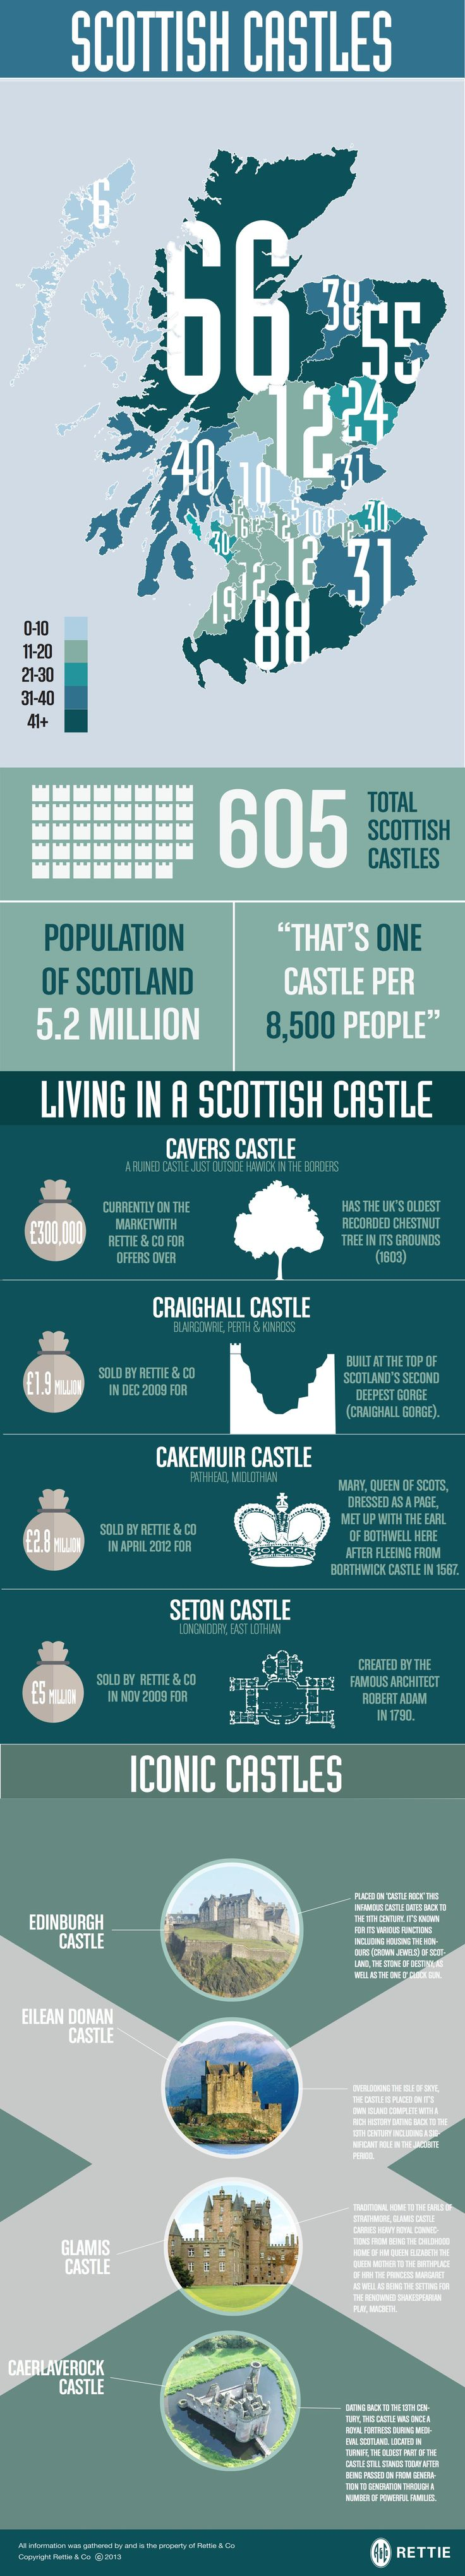 Handy information about the castles of Scotland - where could you visit on your trip with us?